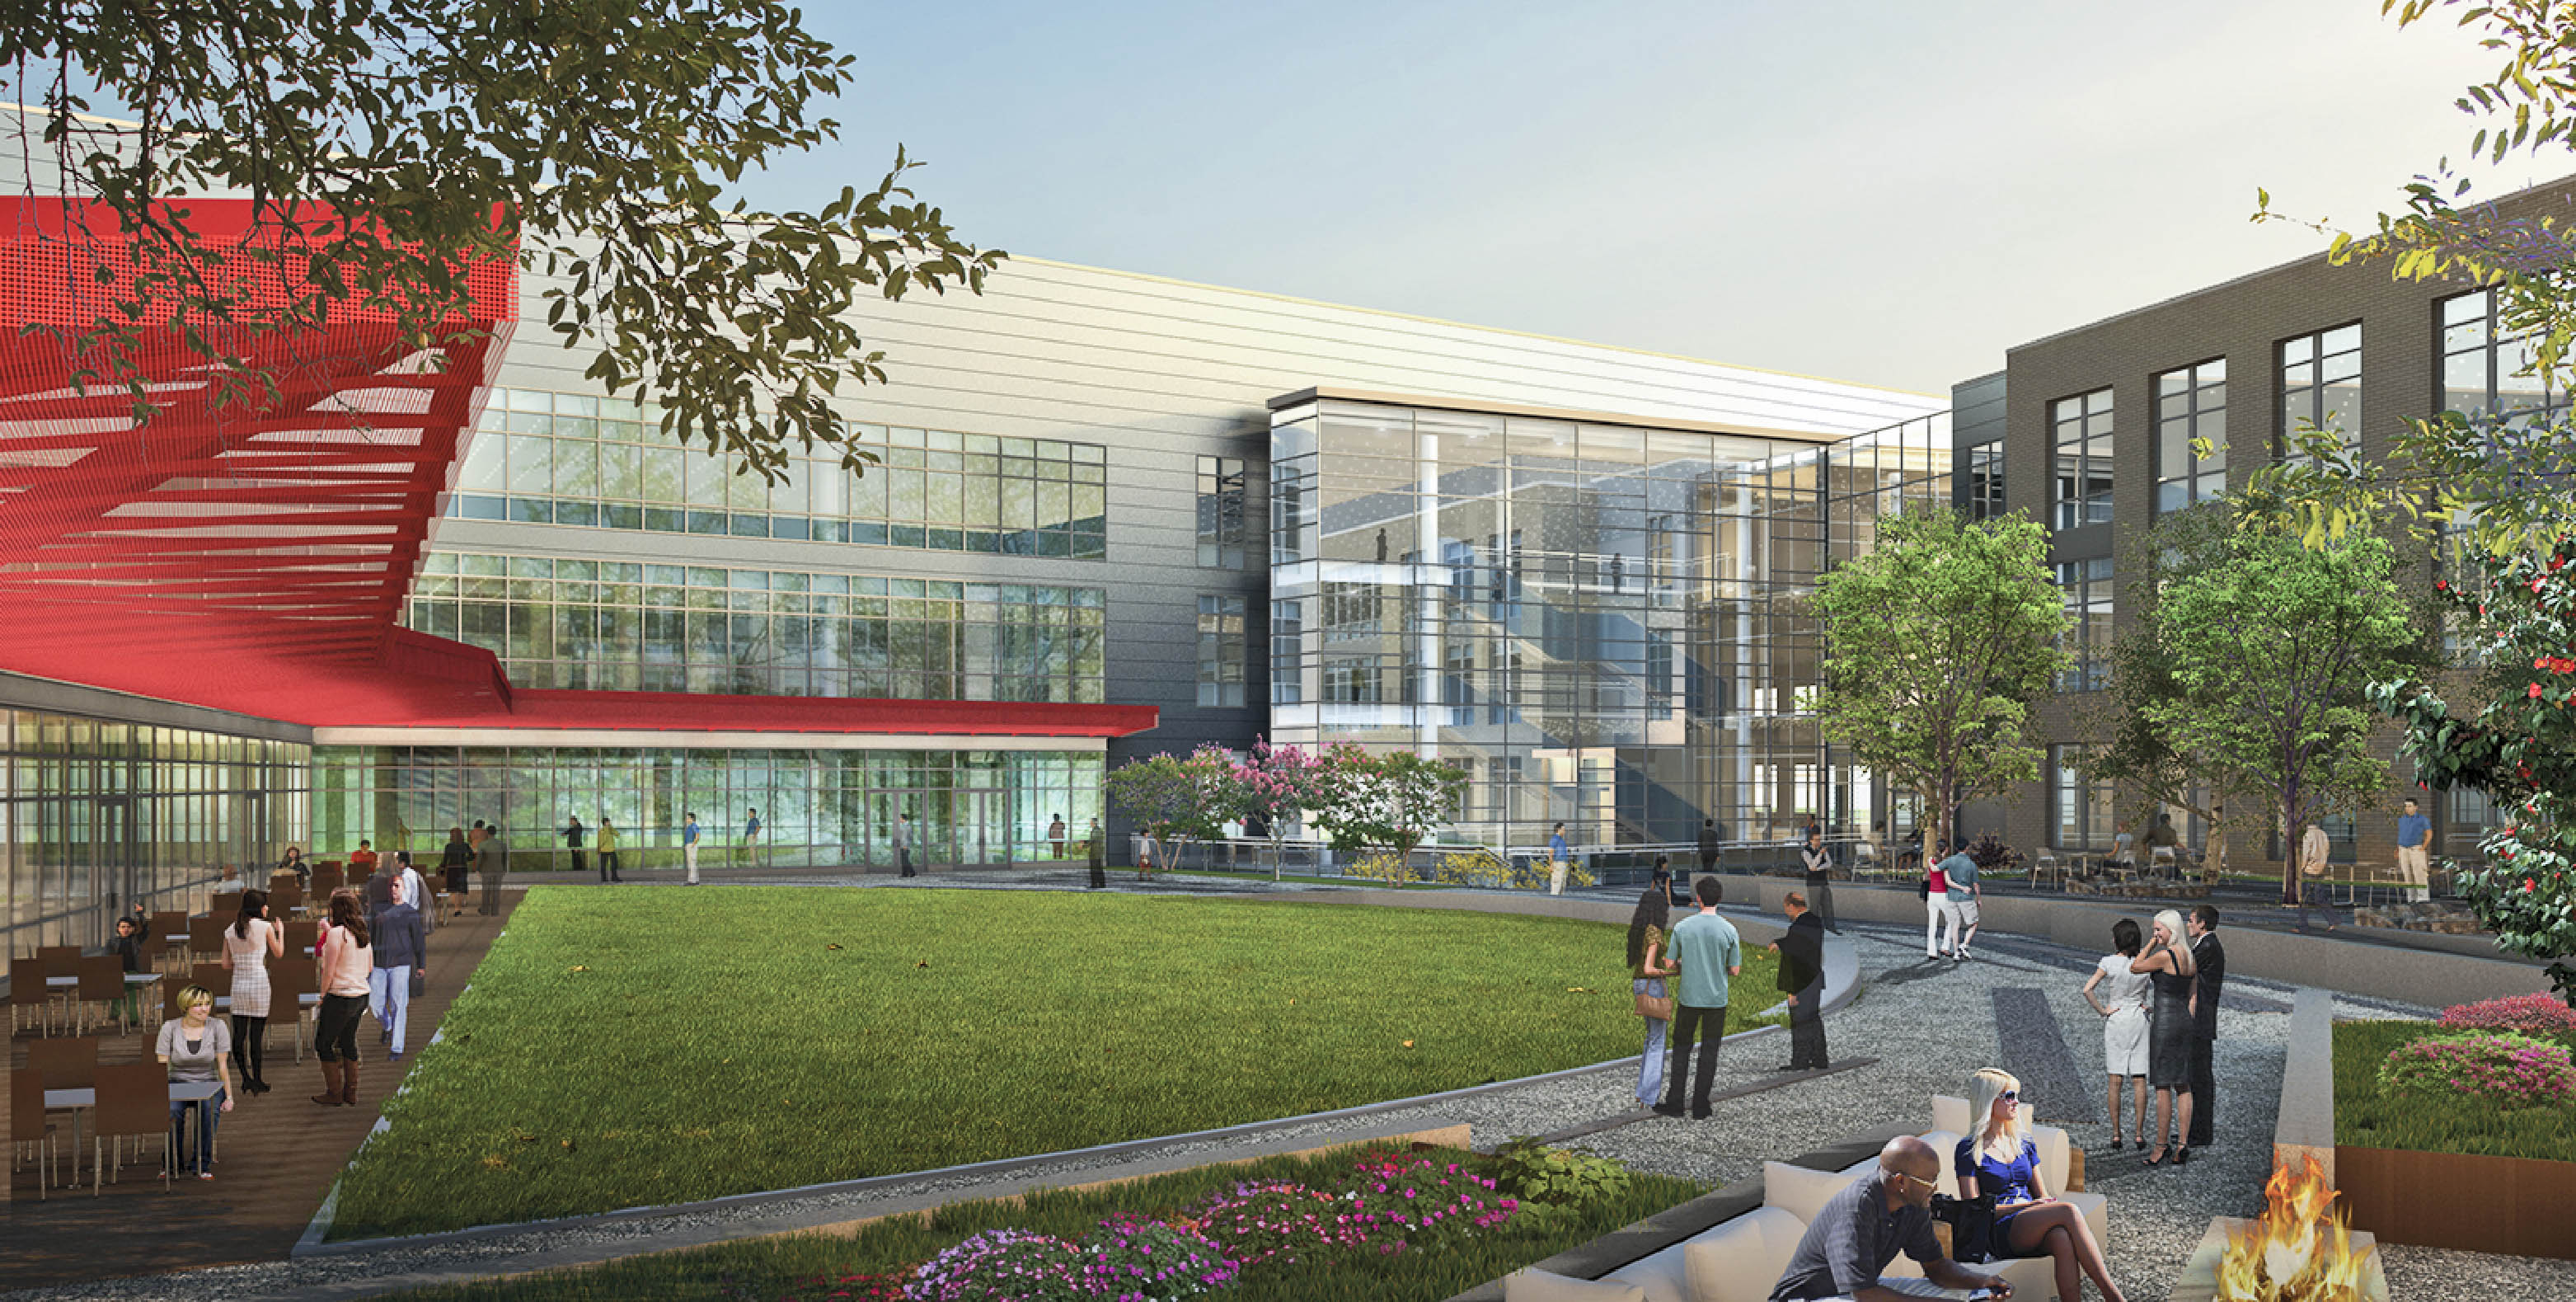 American greetings breaks ground in westlake the villager new tenants are expected to begin occupancy of the american greetingscrocker park phase 3 expansion by summer 2016 renderings show what the finished m4hsunfo